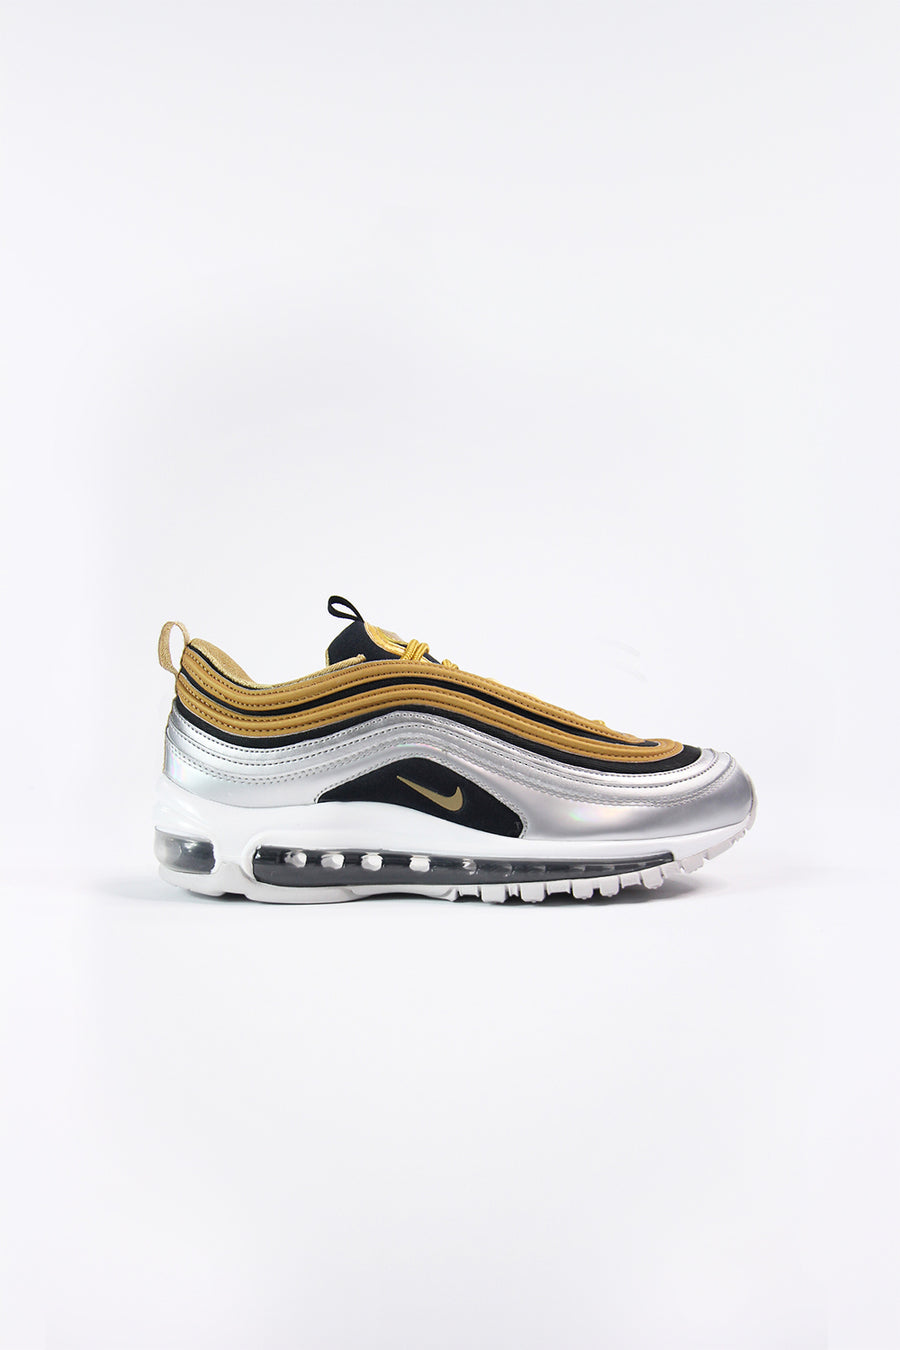 Nike - Air Max 97 Special Edition Damen (Metallic Gold / Metallic Gold) AQ4137-700